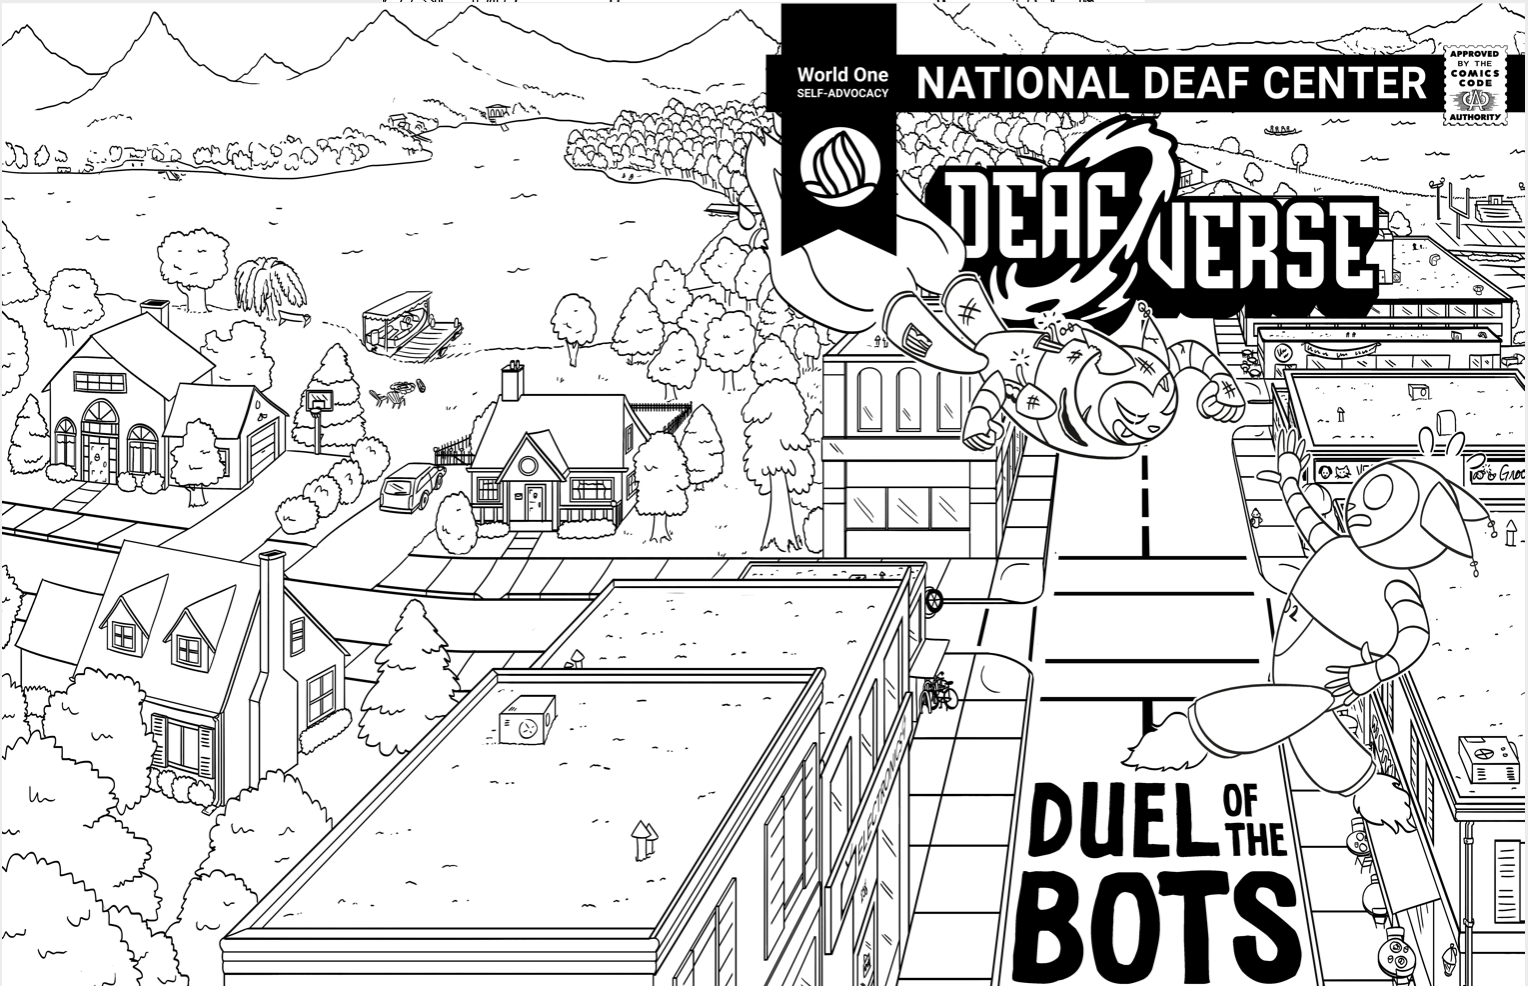 "Black & white comic book cover image with ""NATIONAL DEAF CENTER"" on a black bar across the top and a tab on the left holding the NDC logo. In smaller text over tab: ""World One SELF-ADVOCACY"". The Deafverse logo follows showing the word ""DEAF"" entering a electric portal on the left and ""VERSE"" exiting out from the right. Scene depicted shows two catbots, robots that look like cats, flying midair using jets from their legs and fighting. One catbot looks beat up with broken pieces and exposed wires while the other is cleaner and more well-maintained. They hover over a city street scene that shows people on the sidewalks looking up, buildings lining the streets, and trees and a river in the background. Shadows on the street spell out the words ""DUEL OF THE BOTS""."